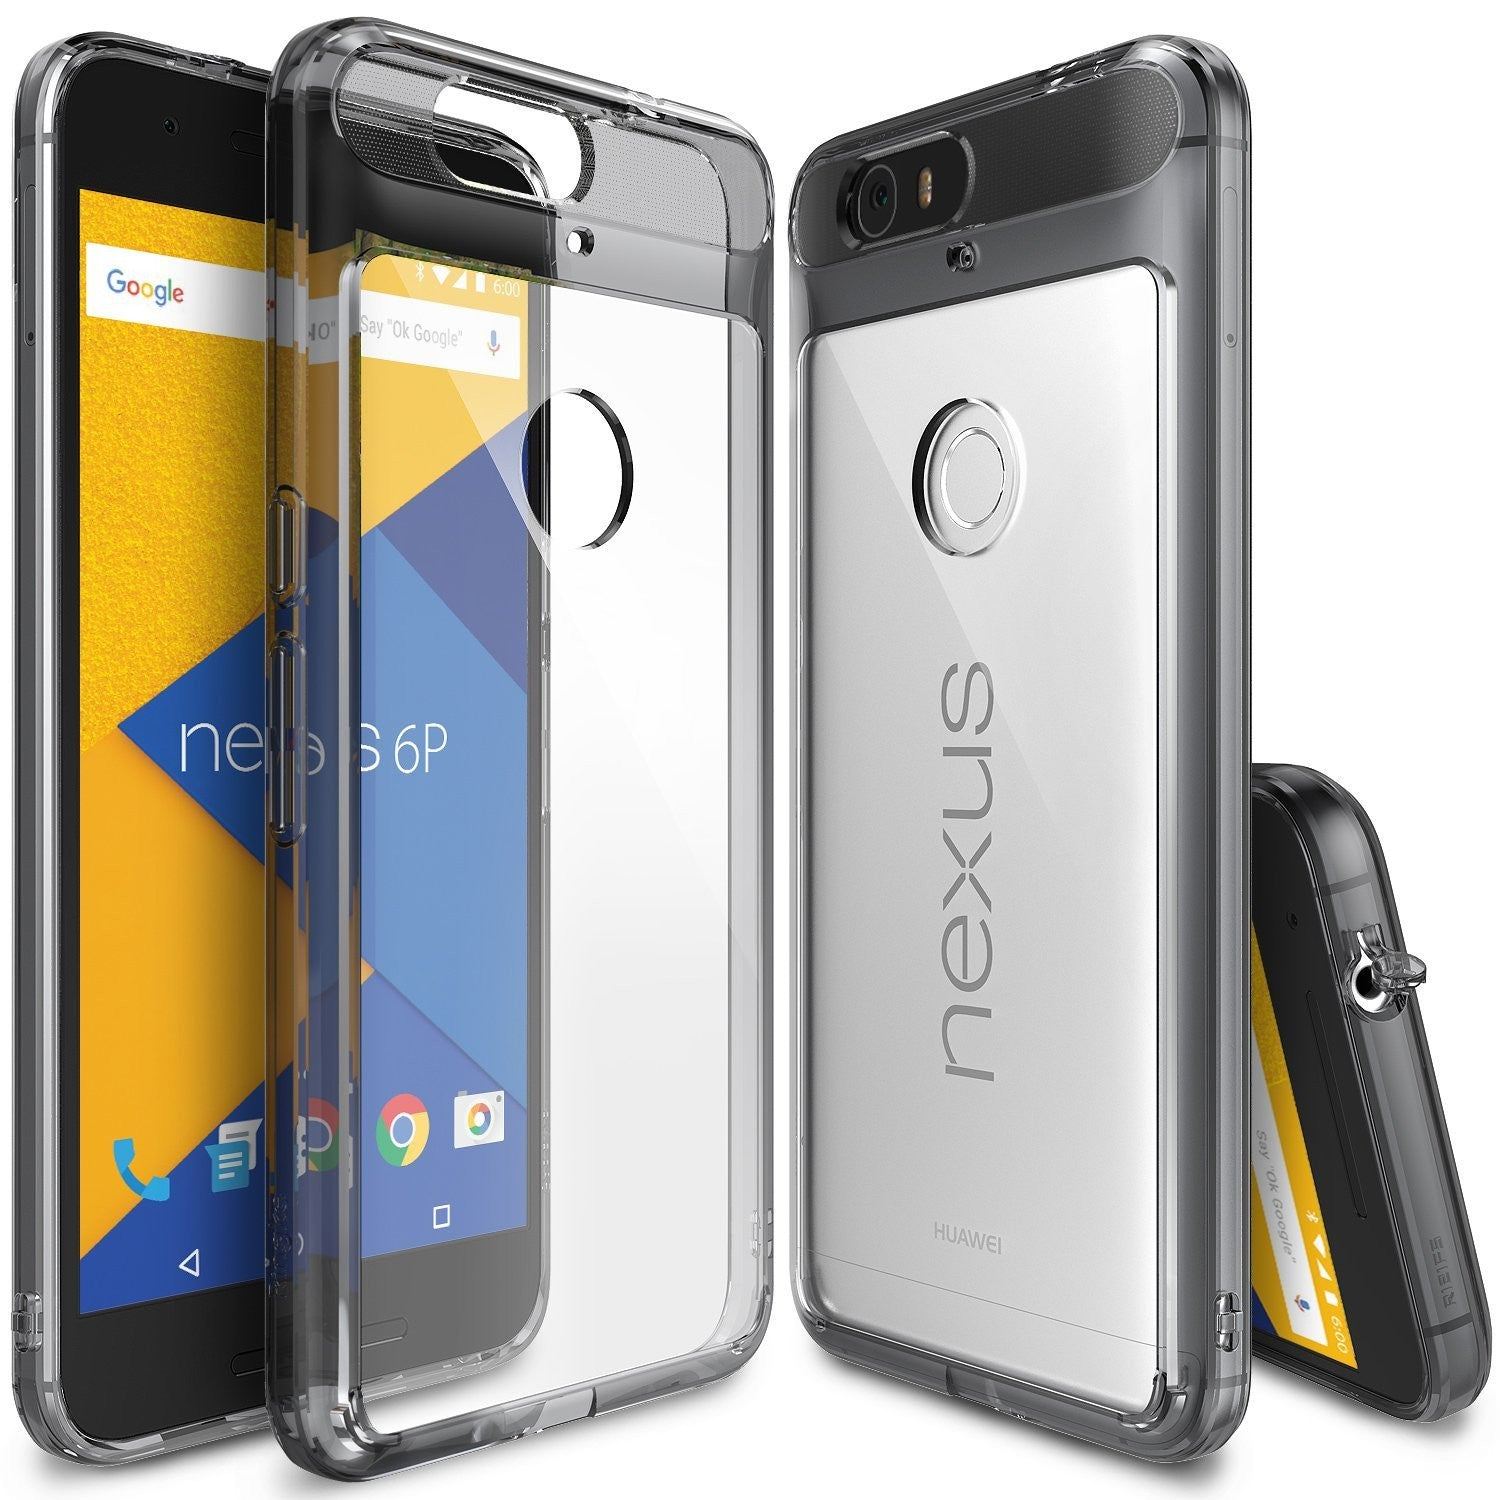 ringke fusion clear transparent hard back case cover for google nexus 6p main smoke black